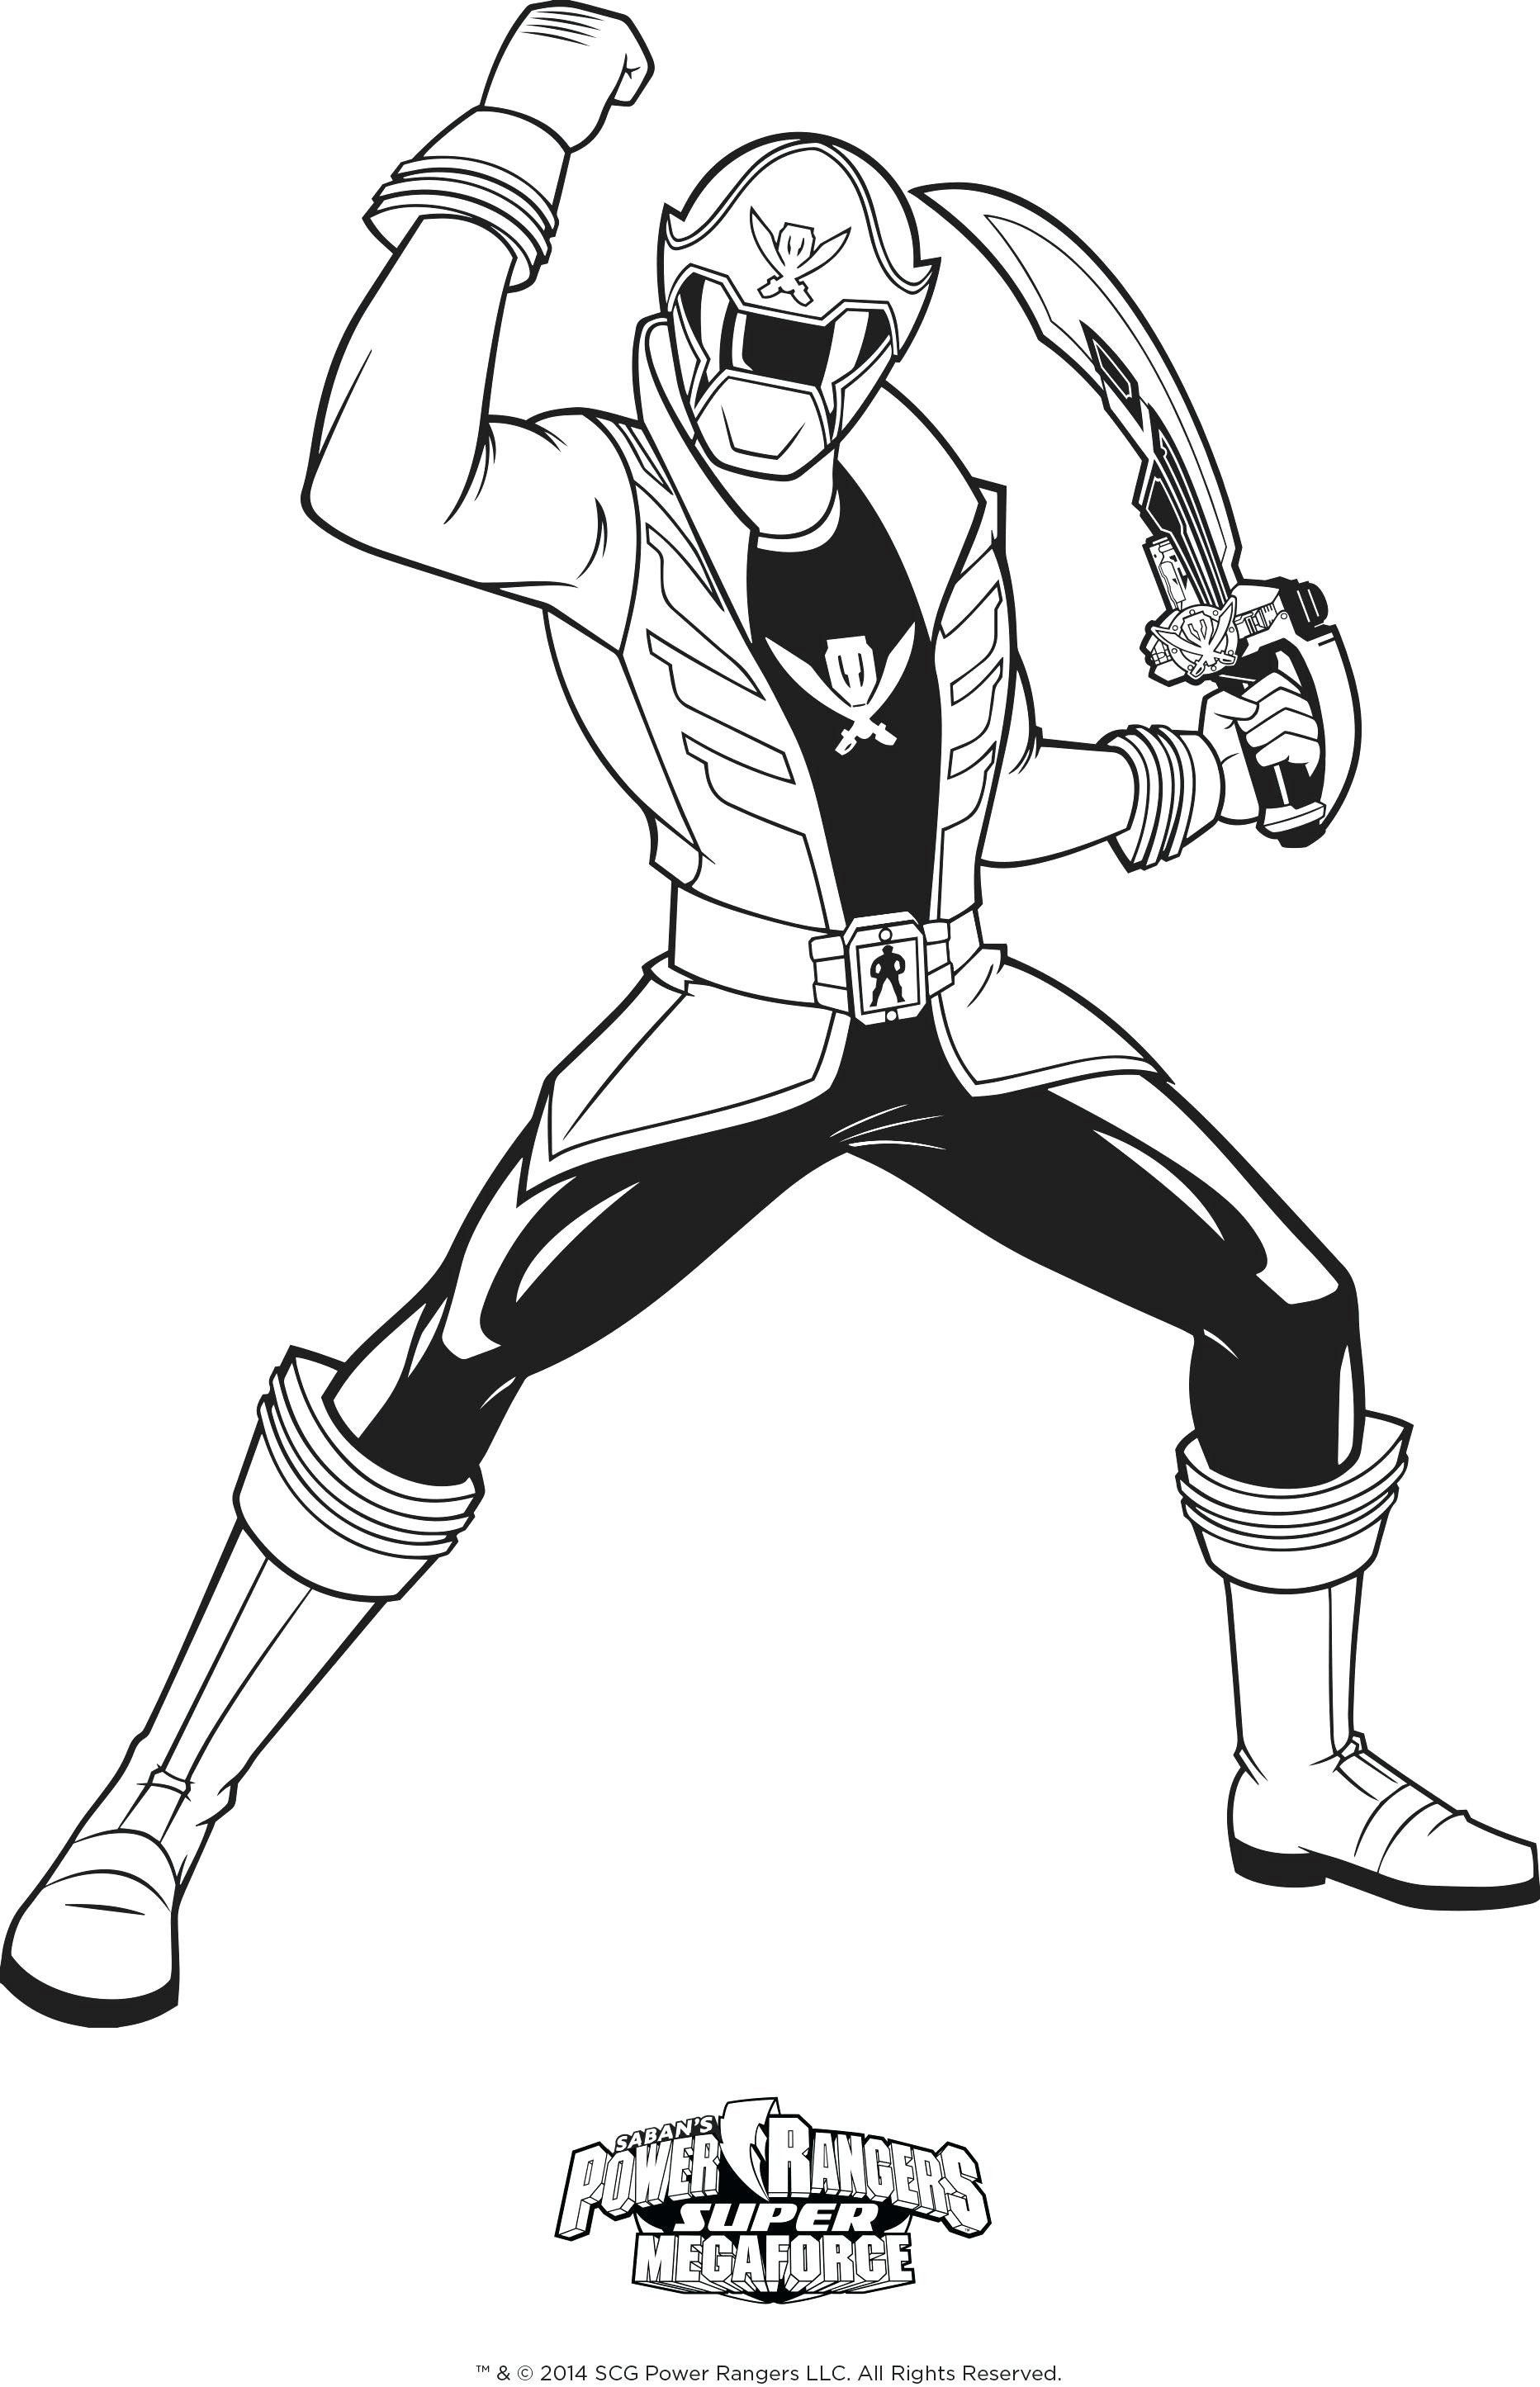 Power Ranger Coloring Pages Luxury Power Ranger Coloring Mask Amicuscolor Power Rangers Coloring Pages Super Coloring Pages Power Rangers Megaforce